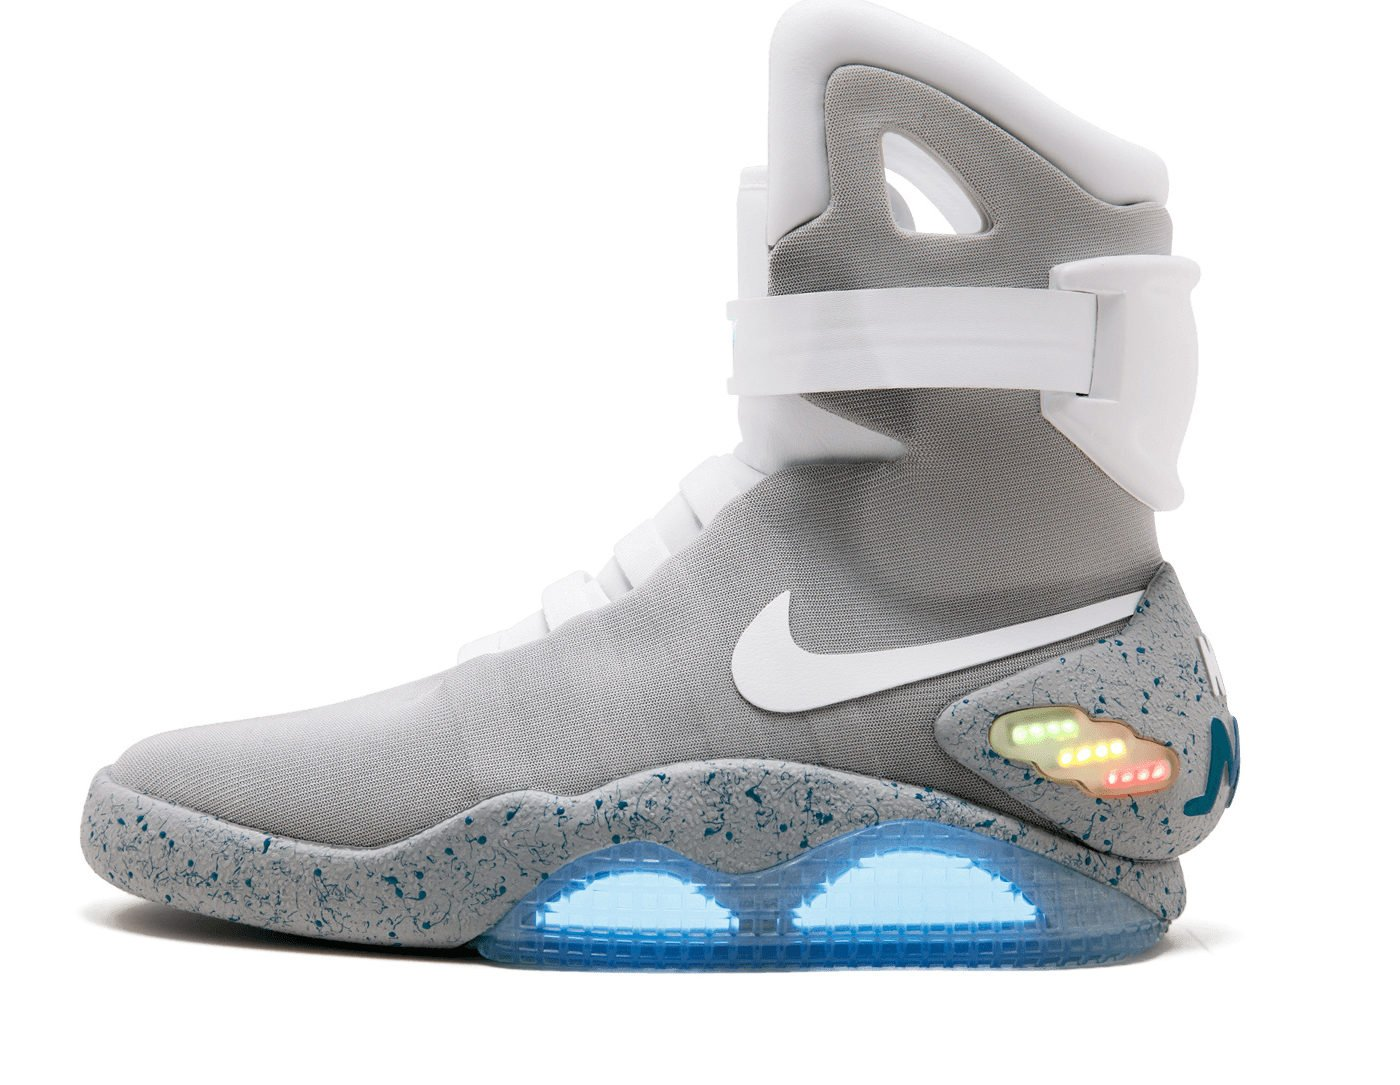 """The Nike Mags sneaker, the design worn by Marty McFly character in """"Back to the Future Part II"""" film and one of only 1,500 pairs made, is seen in this Sotheby's image released on July 11, 2019. Courtesy Sotheby's/Handout via REUTERS - RC1393F9FB70"""